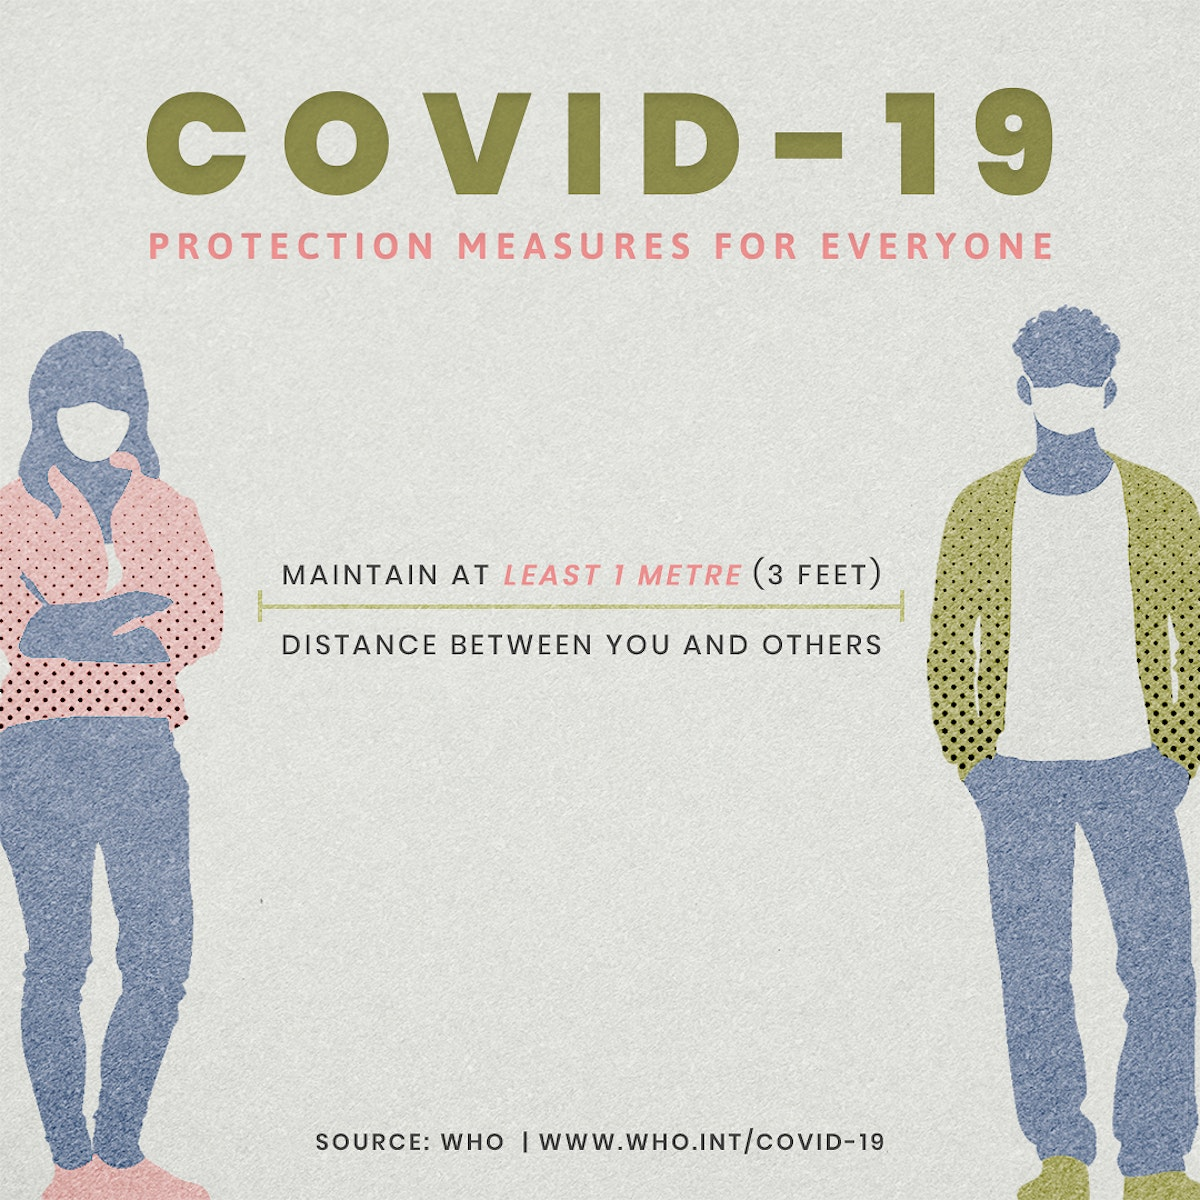 COVID-19 protection measures for everyone social template source WHO mockup